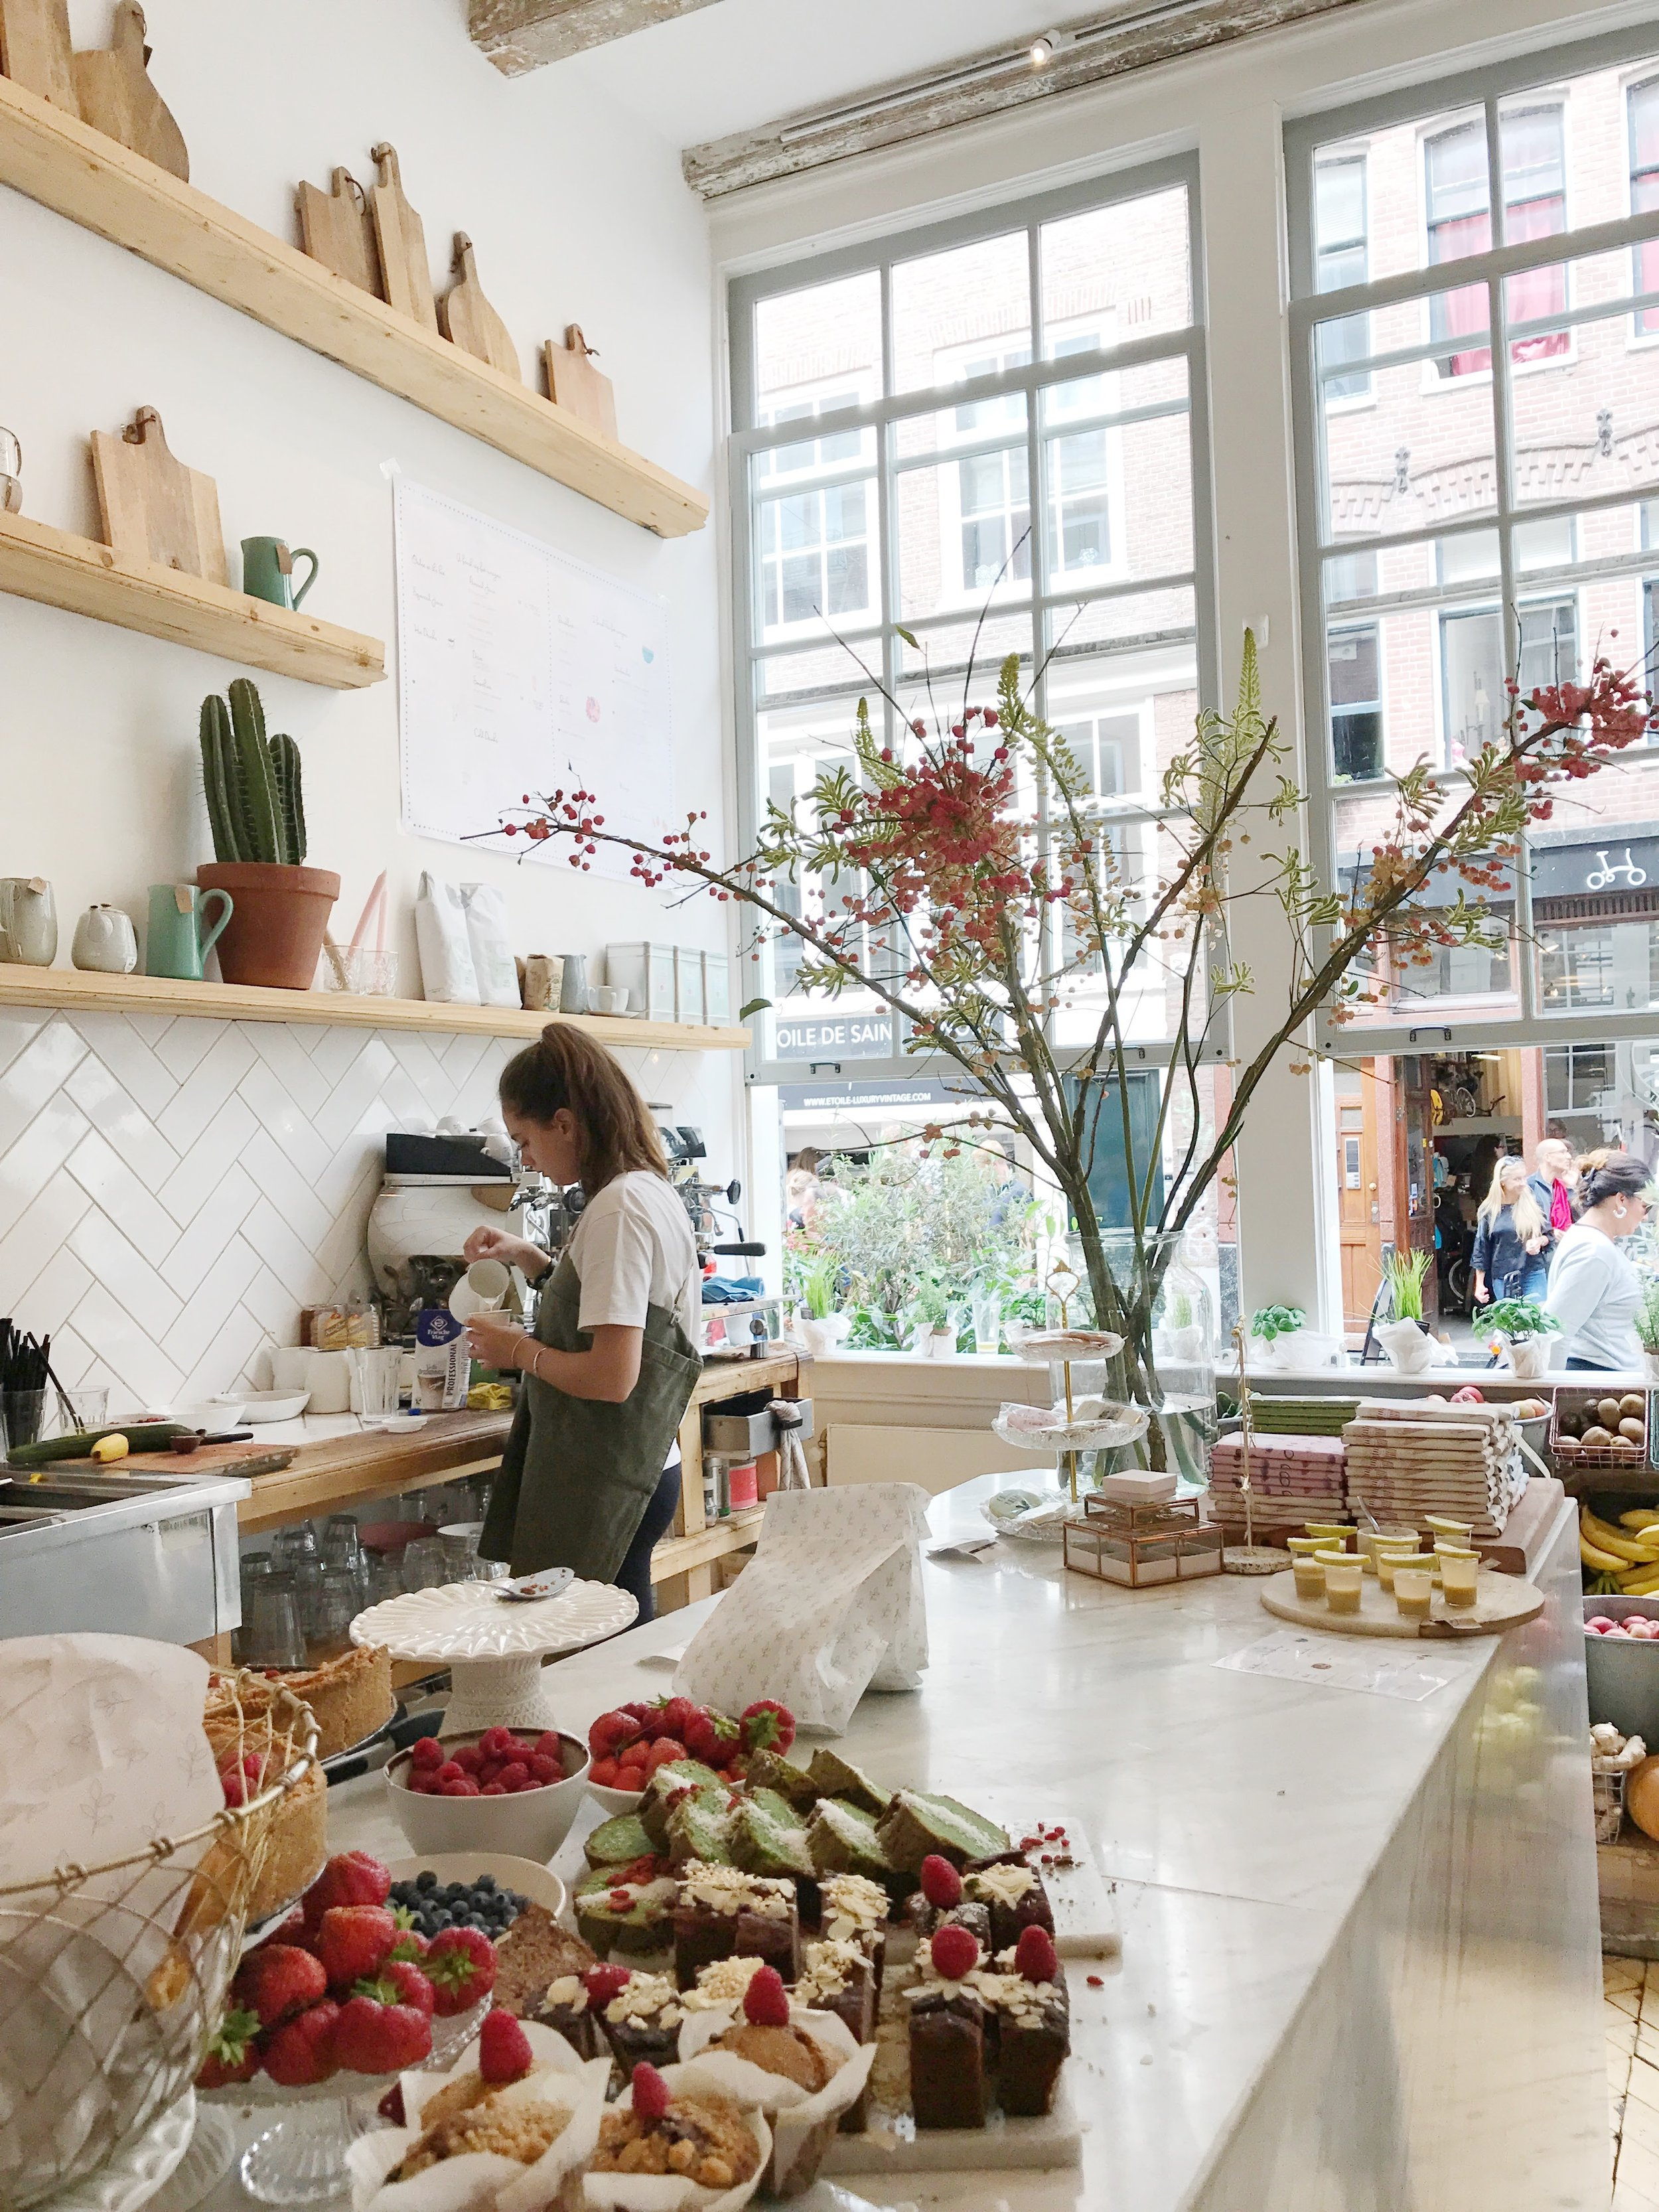 PLUK is the most gorgeous shop and cafe nestled in the 9 streets.